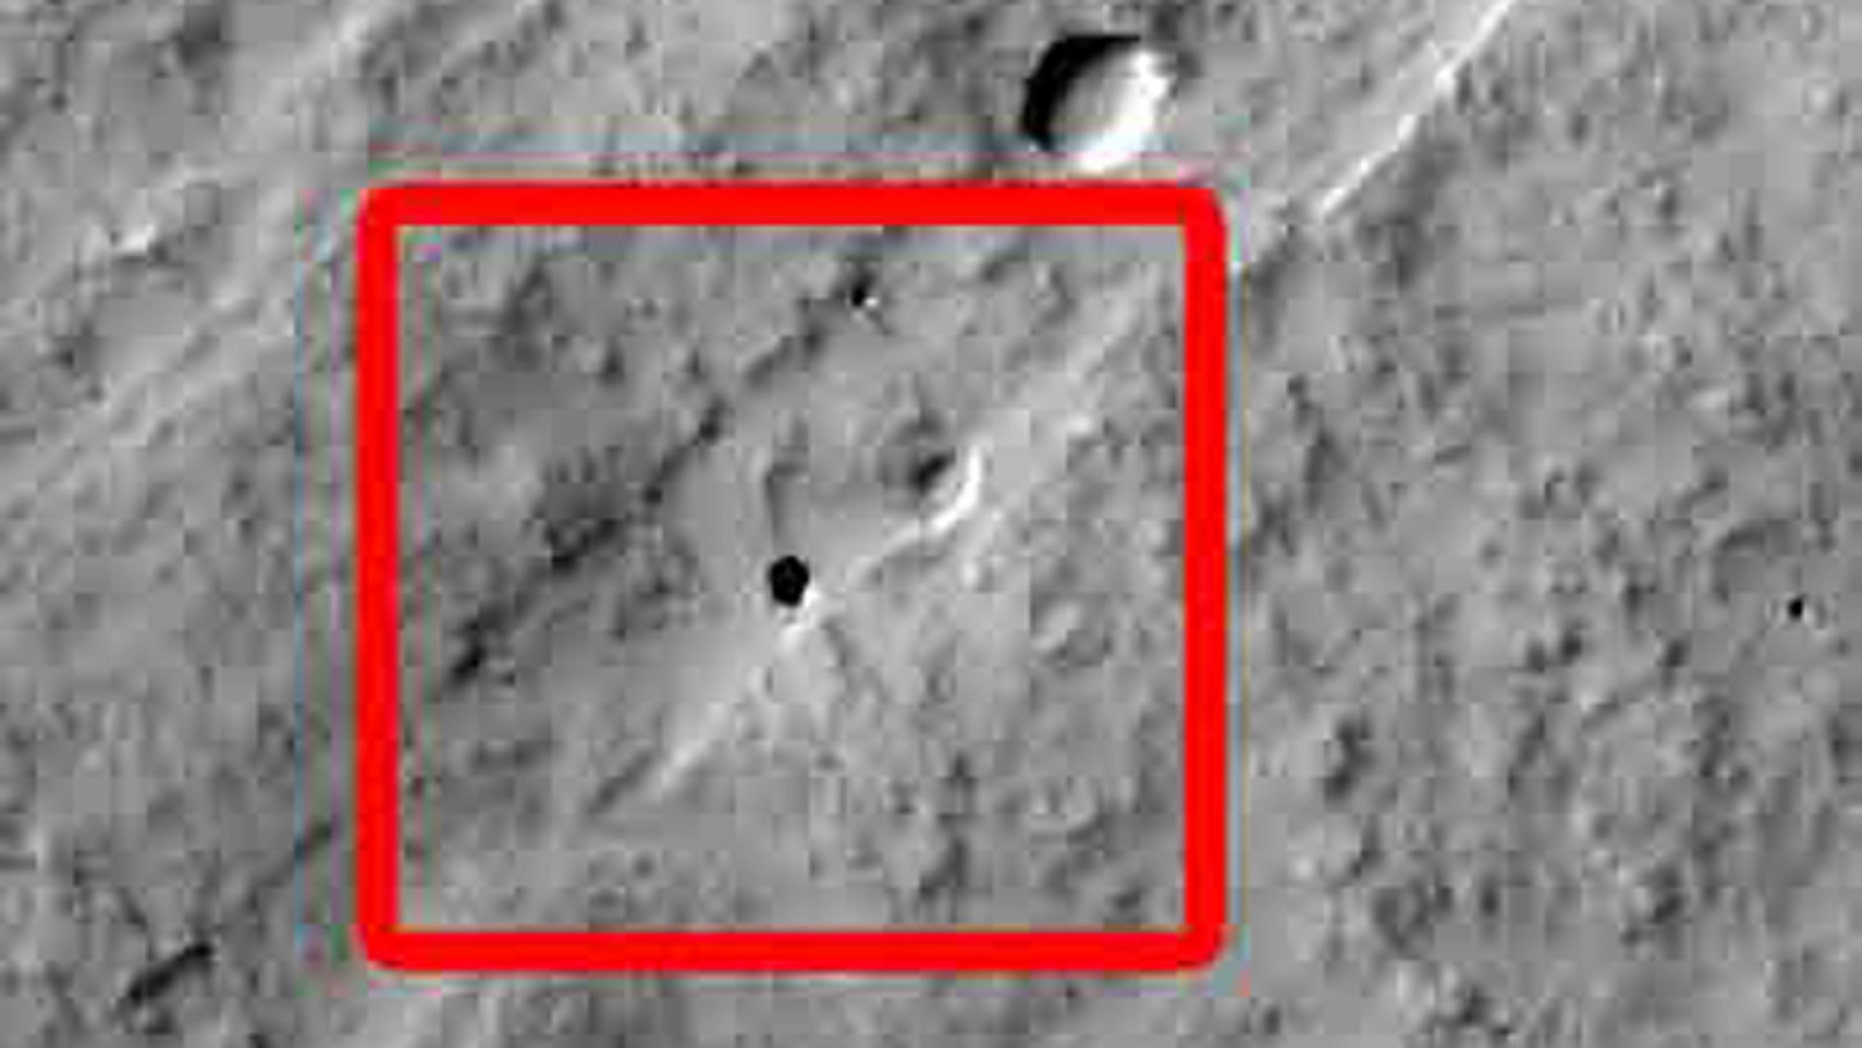 California 7th graders discovered this Martian pit feature at the center of the superimposed red square in this image while participating in a program that enables students to use the camera on NASA's Mars Odyssey orbiter. The feature, on the slope of an equatorial volcano named Pavonis Mons, appears to be a skylight in an underground lava tube.